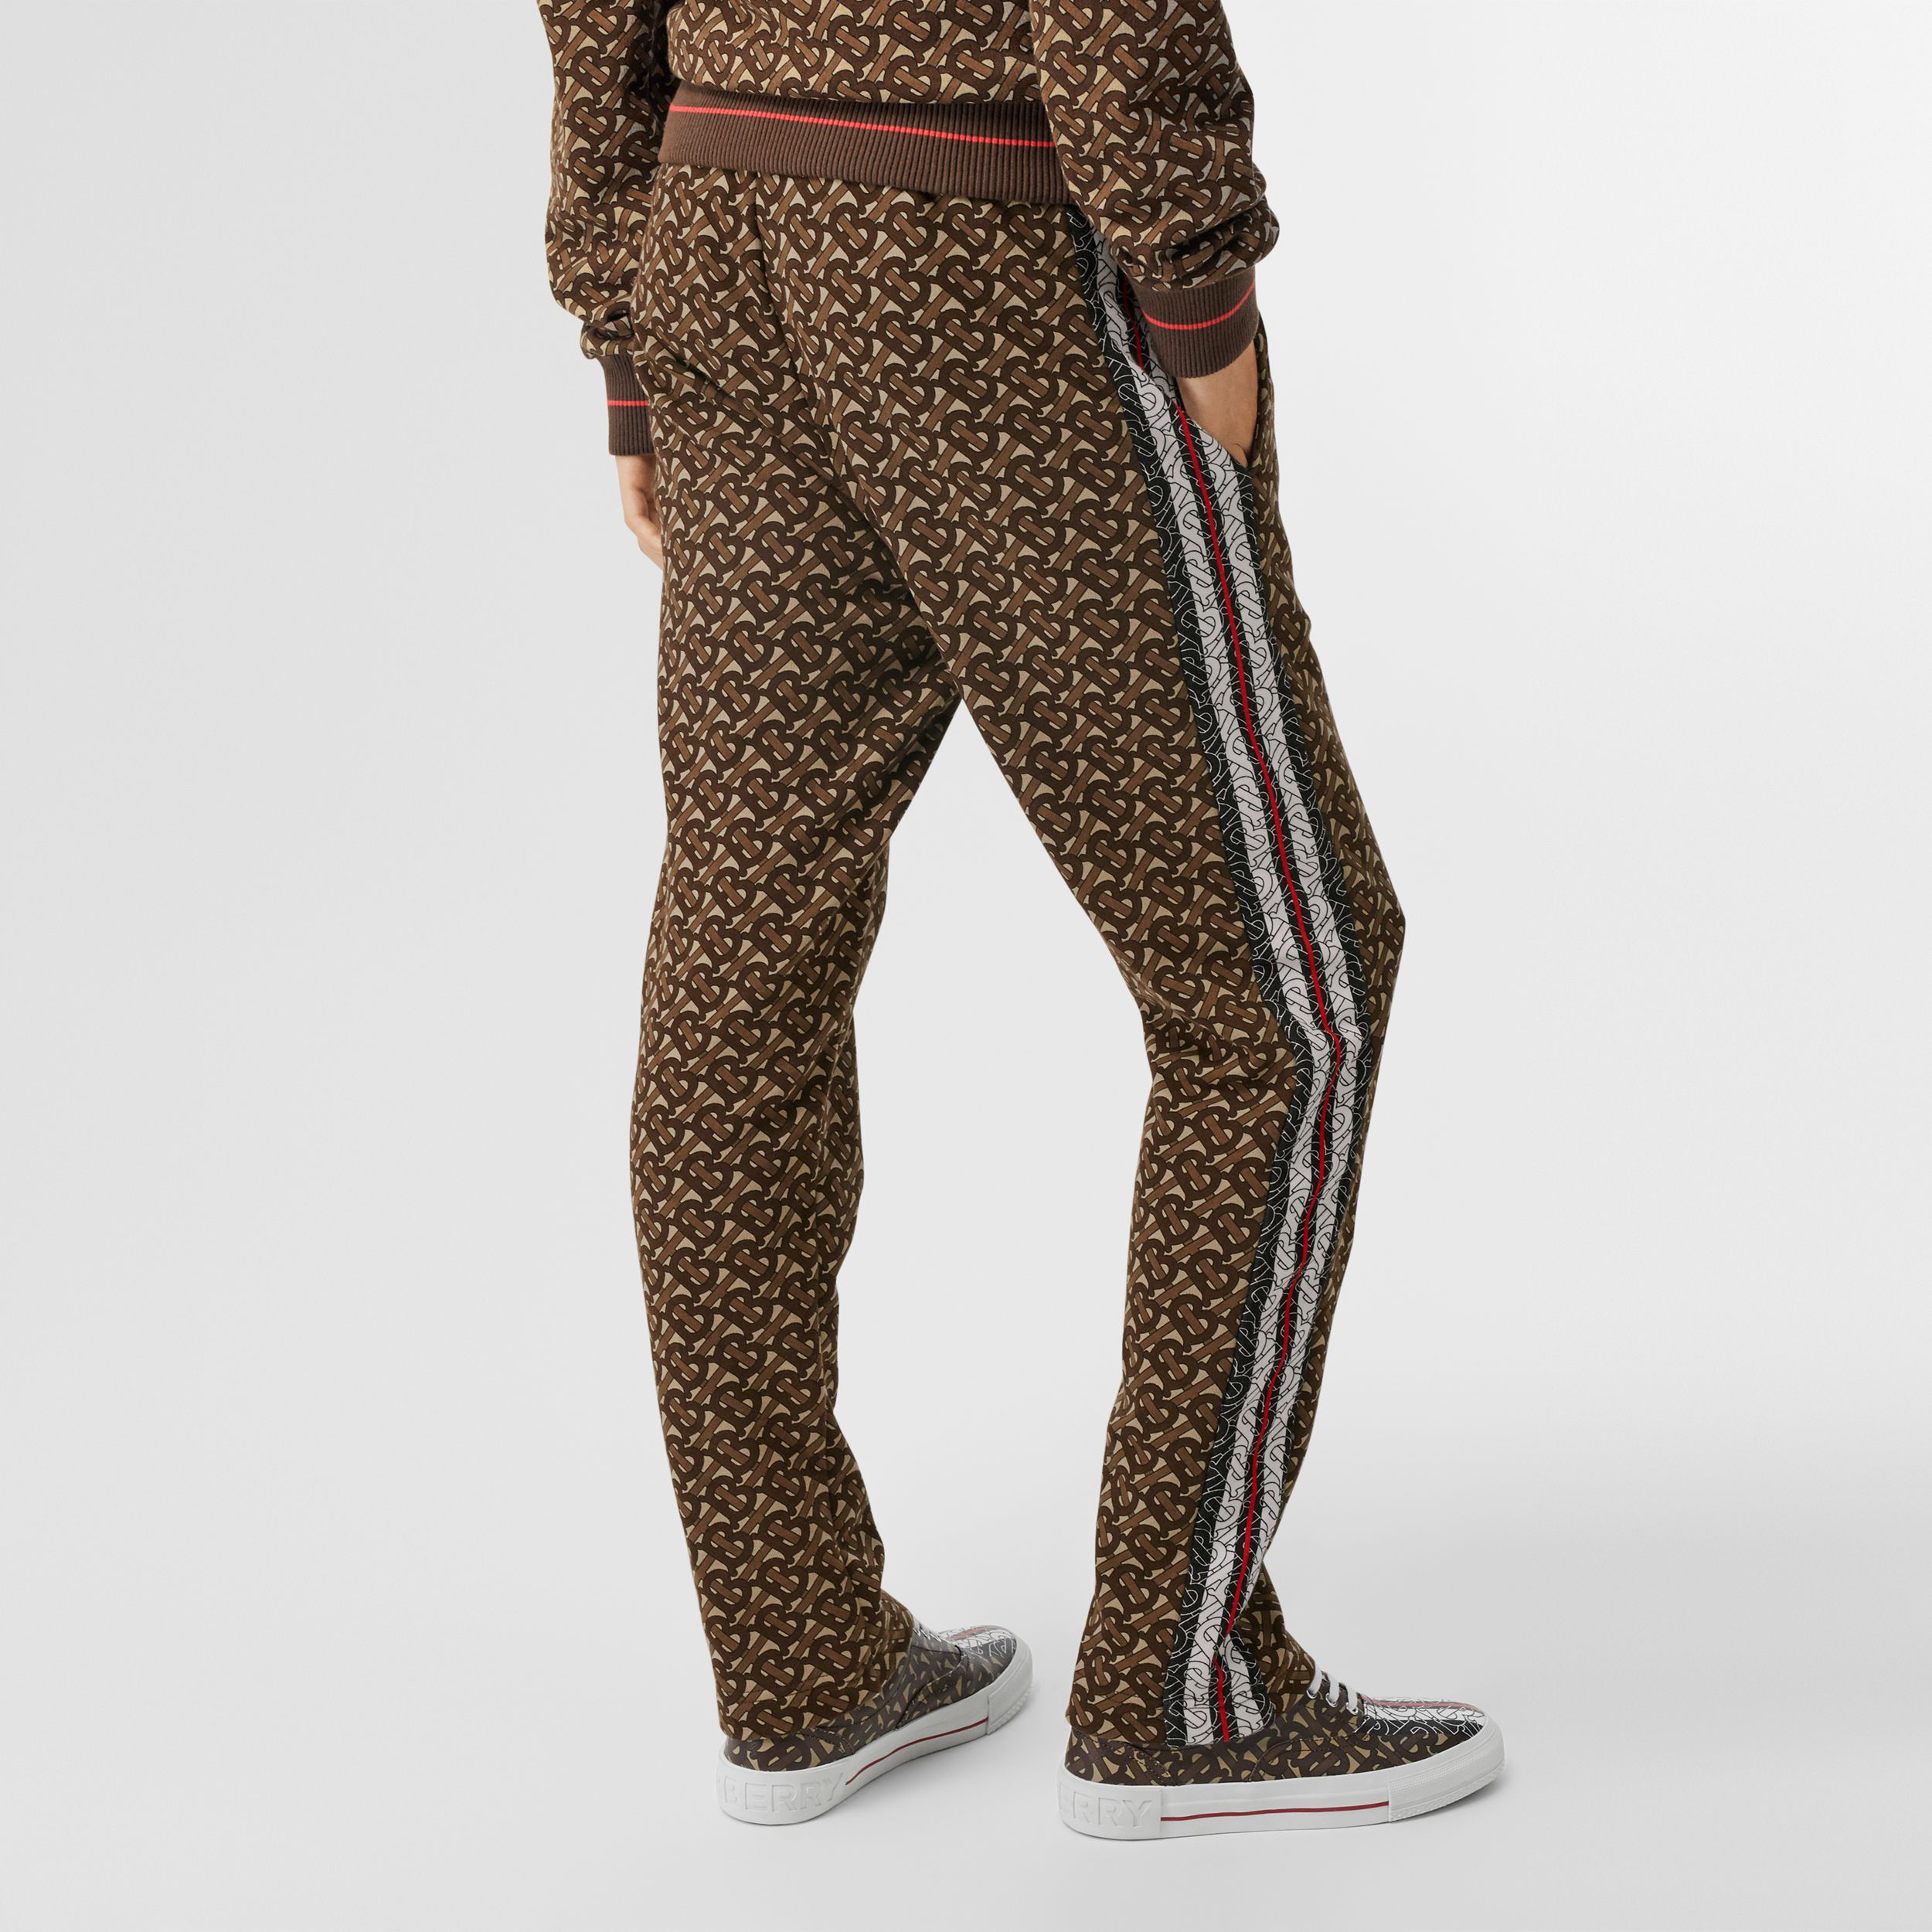 Monogram Stripe Print Cotton Jogging Pants in Bridle Brown - Women | Burberry Australia - 2